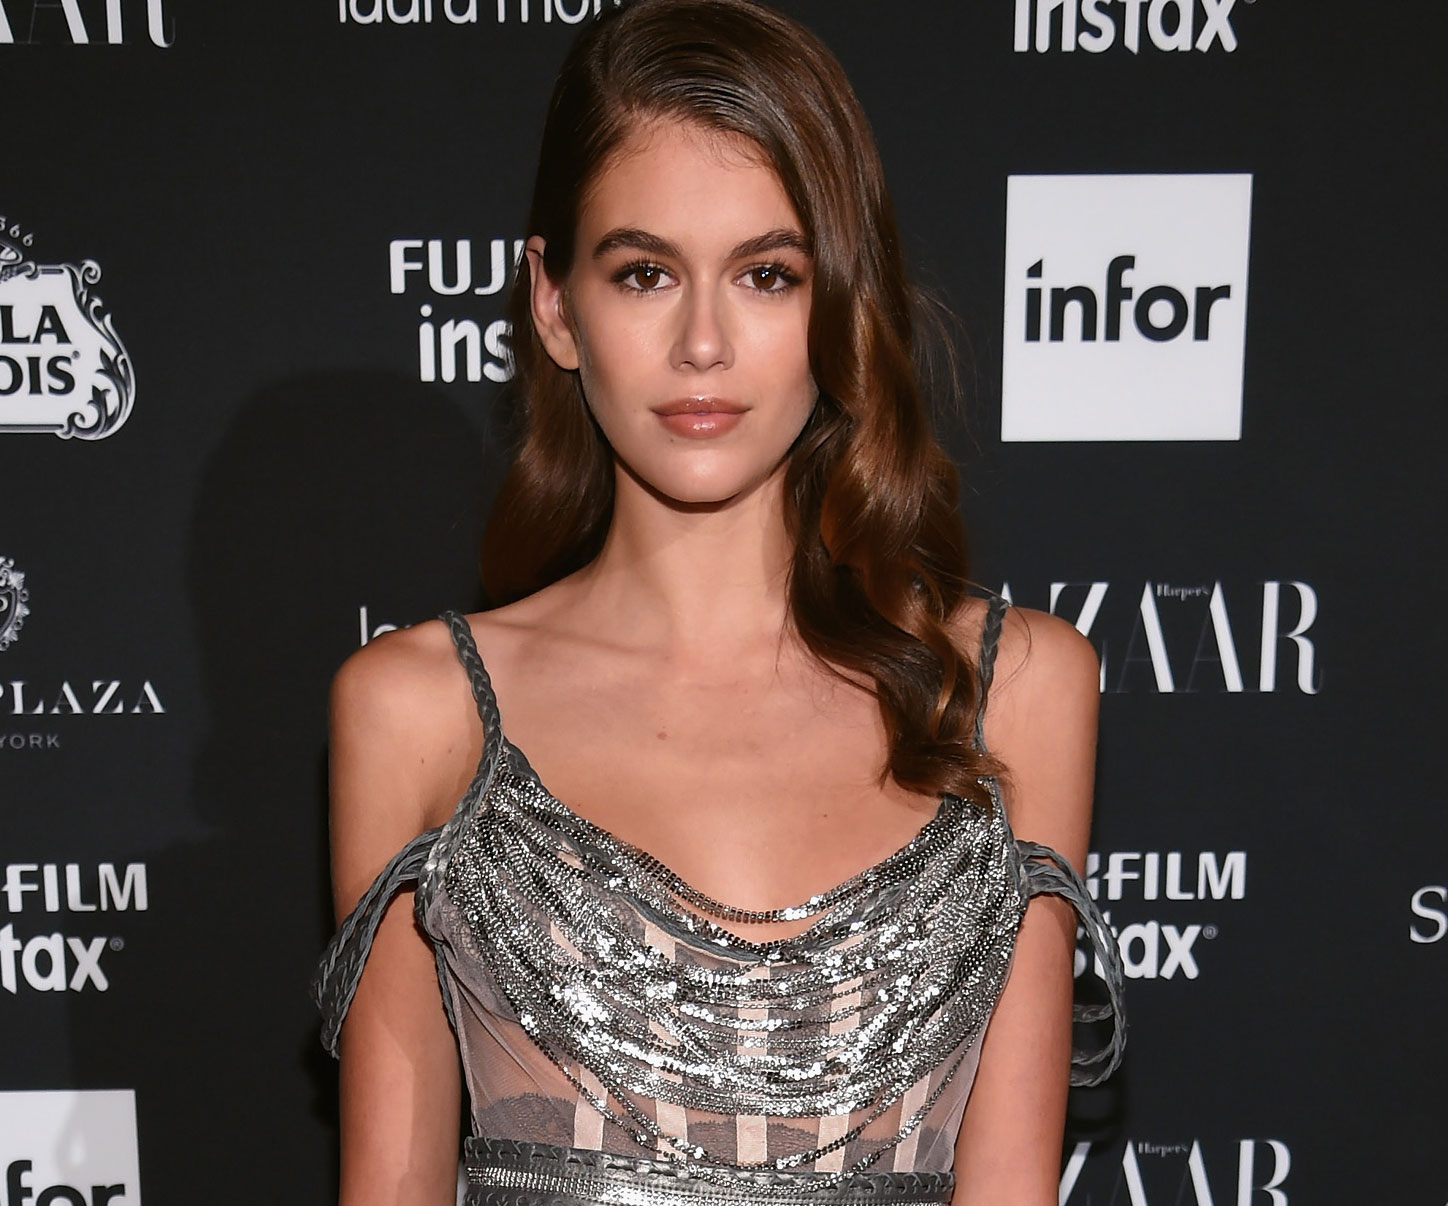 Kaia Gerber and Karl Lagerfeld Teaming Up to Design a Collection